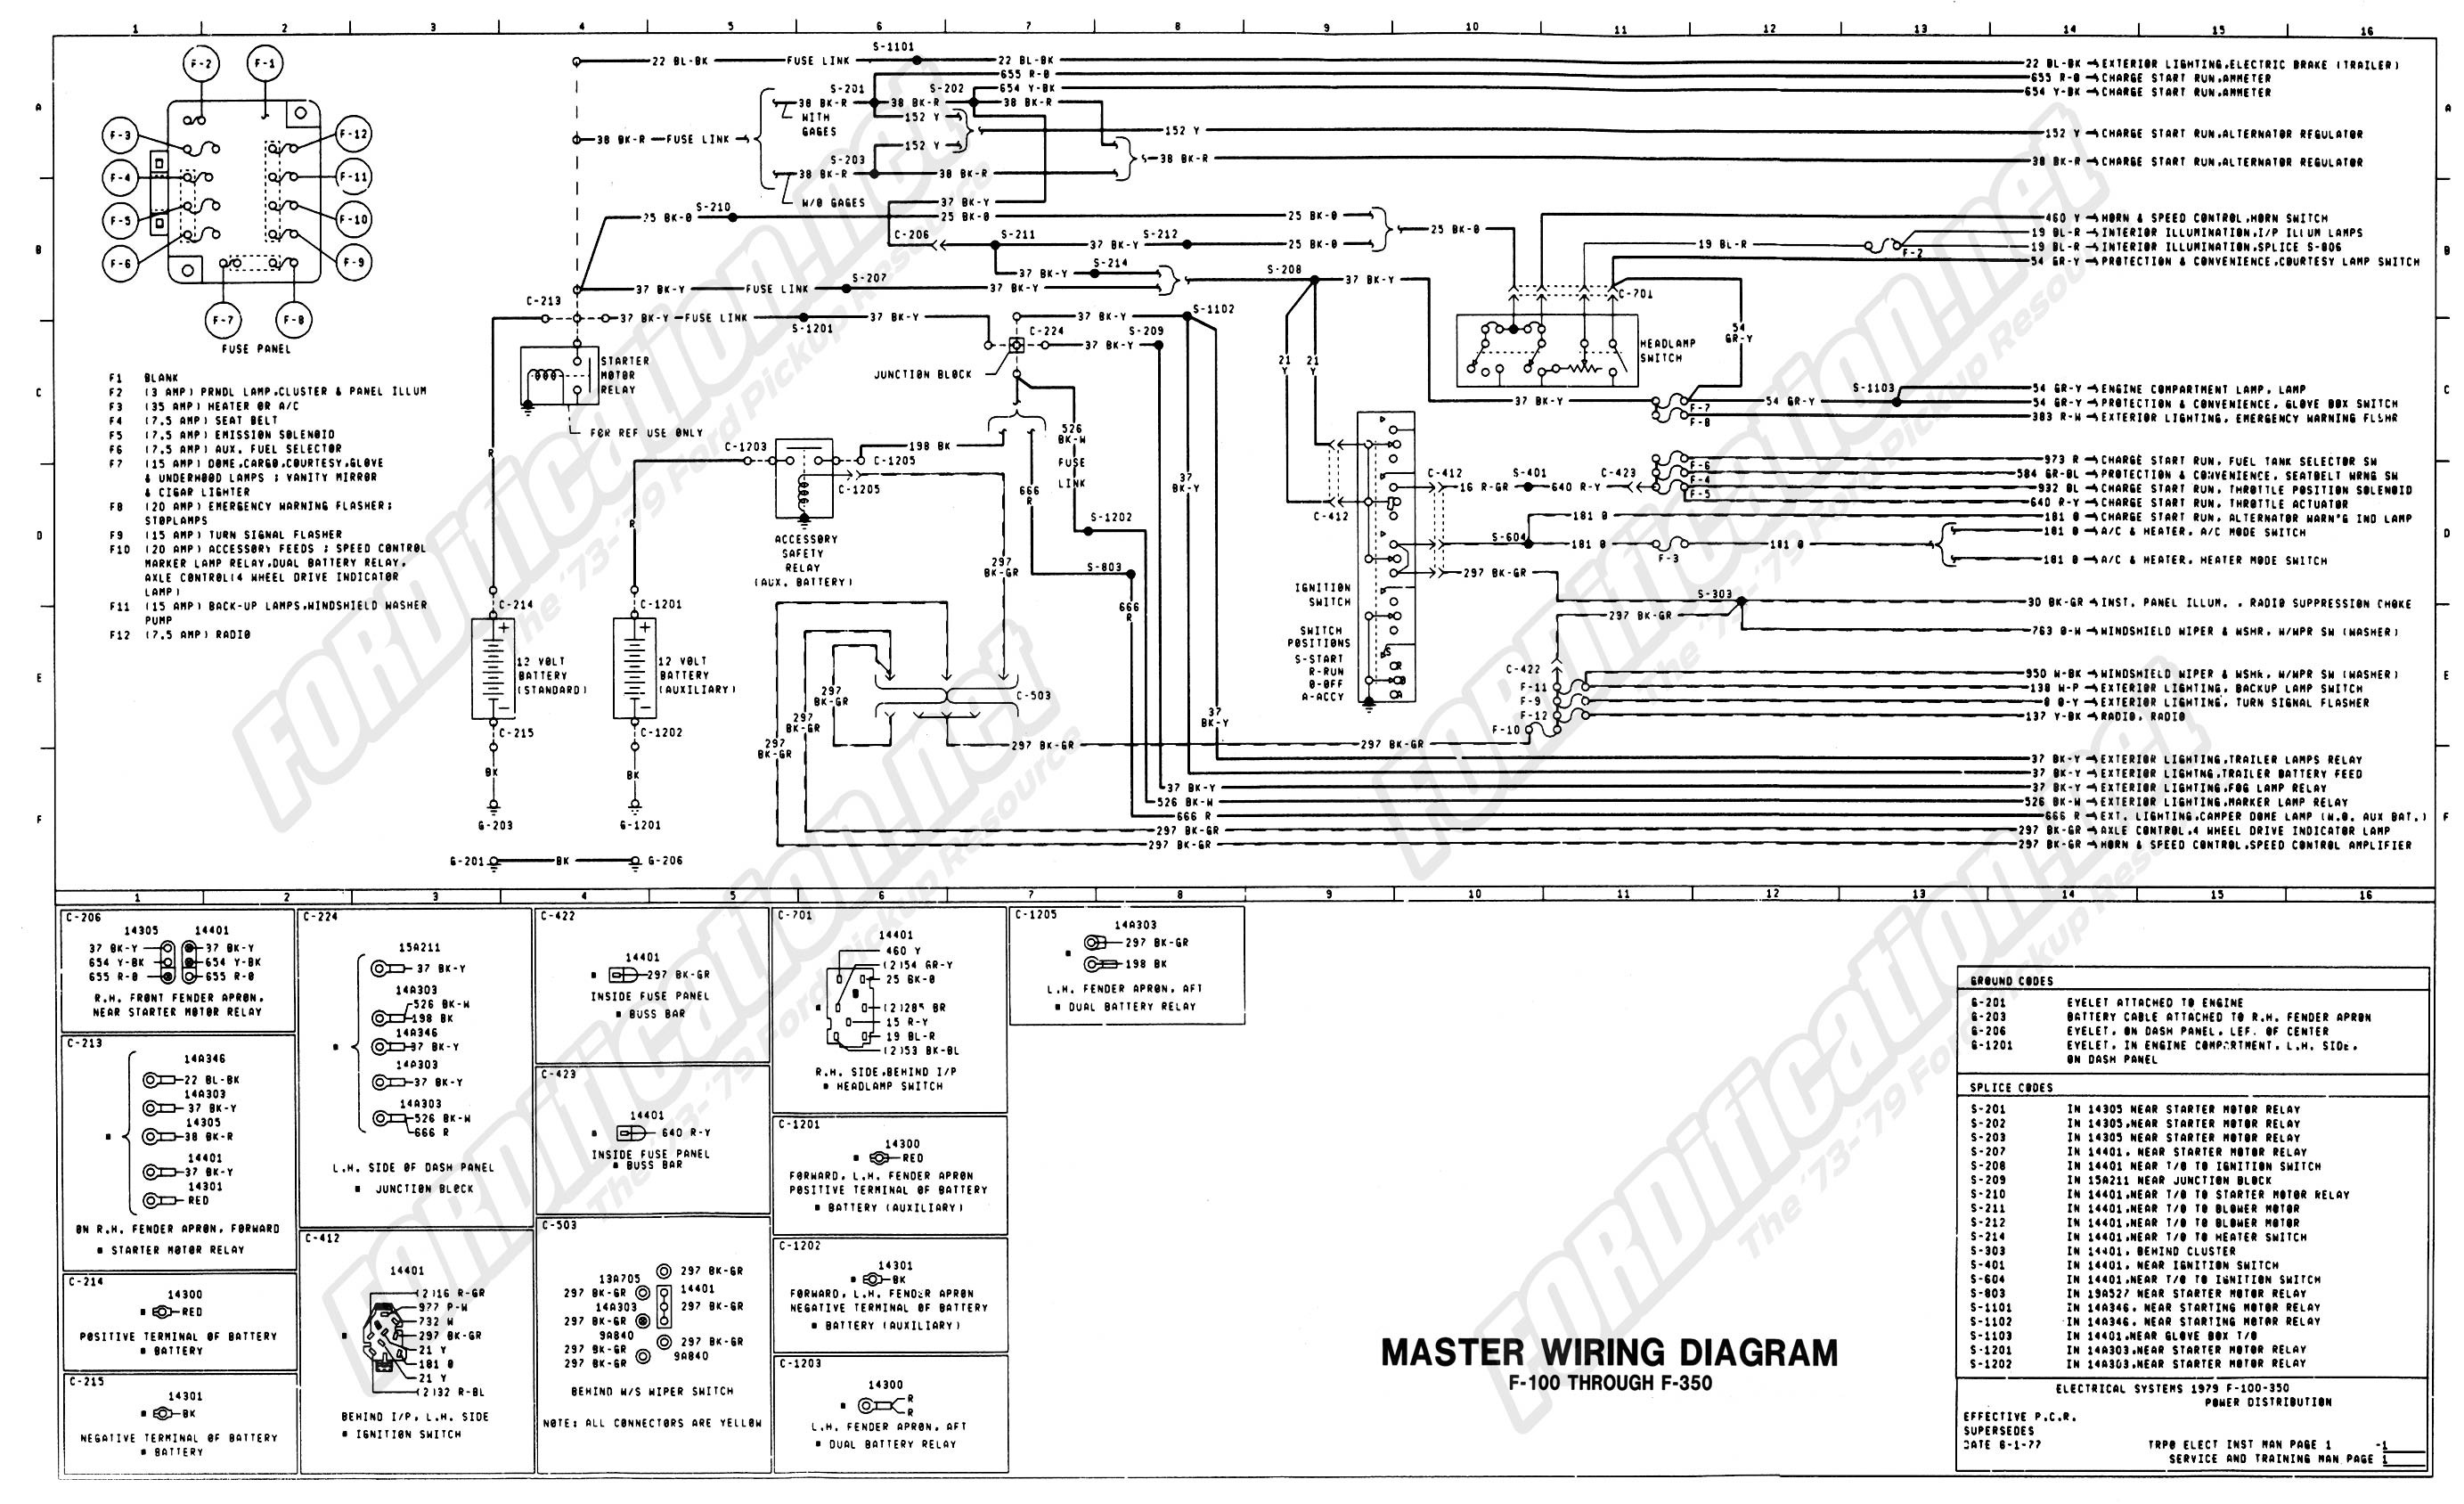 Ford F150 Tail Light Wiring Diagram 1973 1979 ford Truck Wiring Diagrams & Schematics fordification Of Ford F150 Tail Light Wiring Diagram Volvo Lights Wiring Diagram Custom Wiring Diagram •